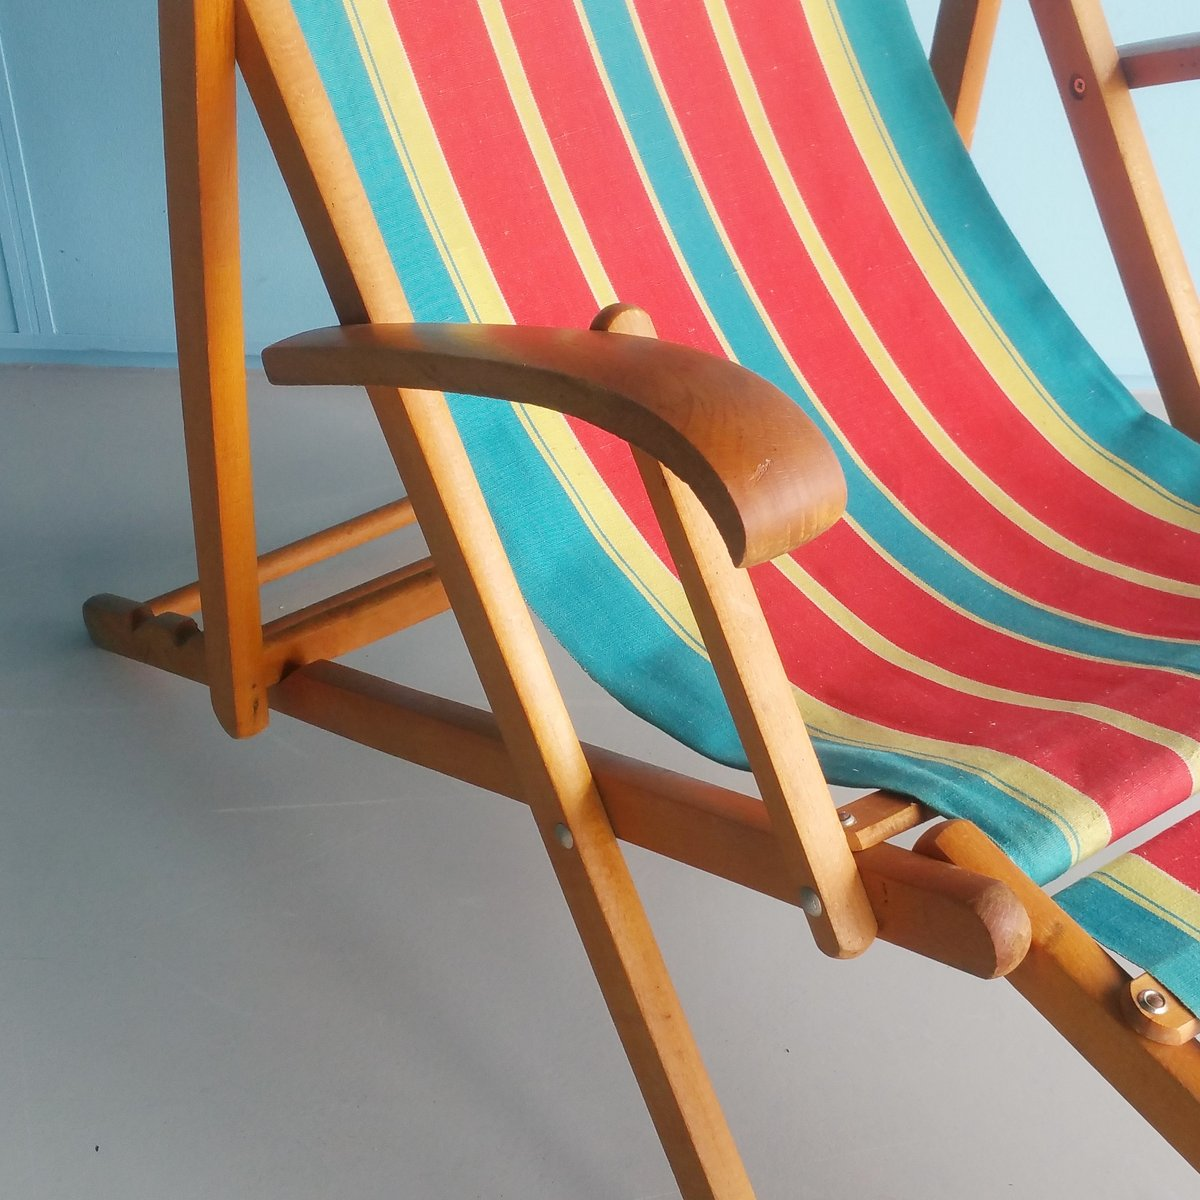 Vintage folding beach chairs - Vintage Folding Wooden Beach Chair 1960s 4 301 00 Price Per Piece